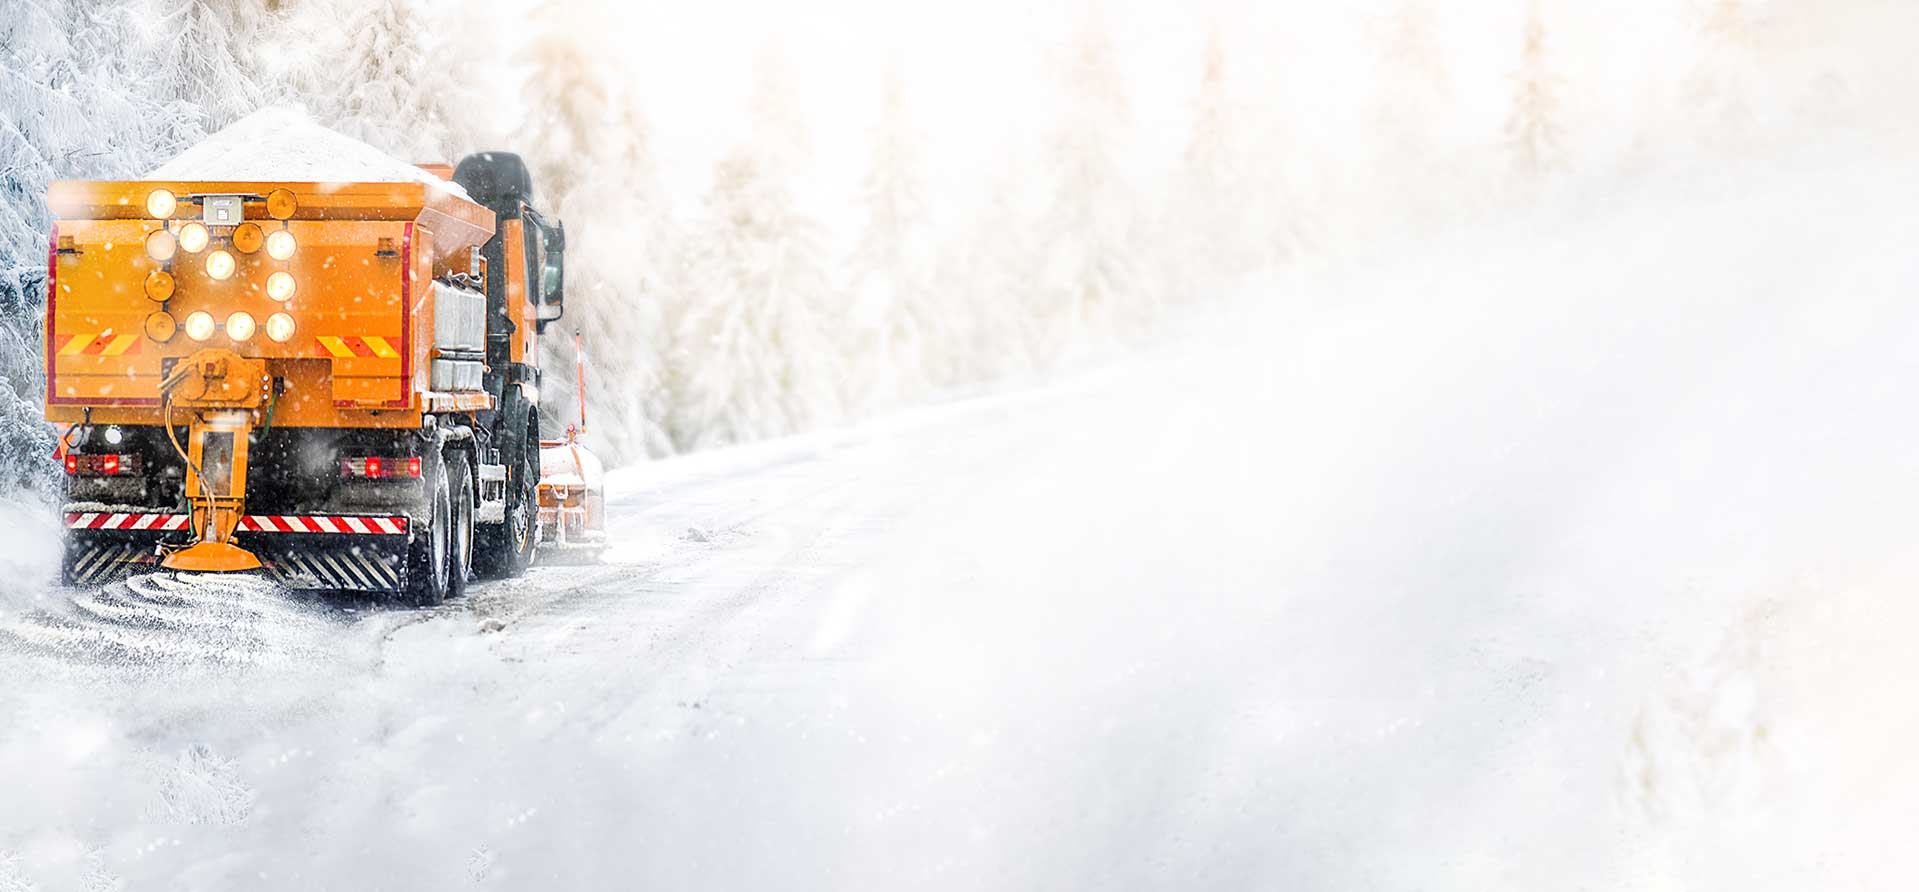 Homepage backgrounds snow plow4